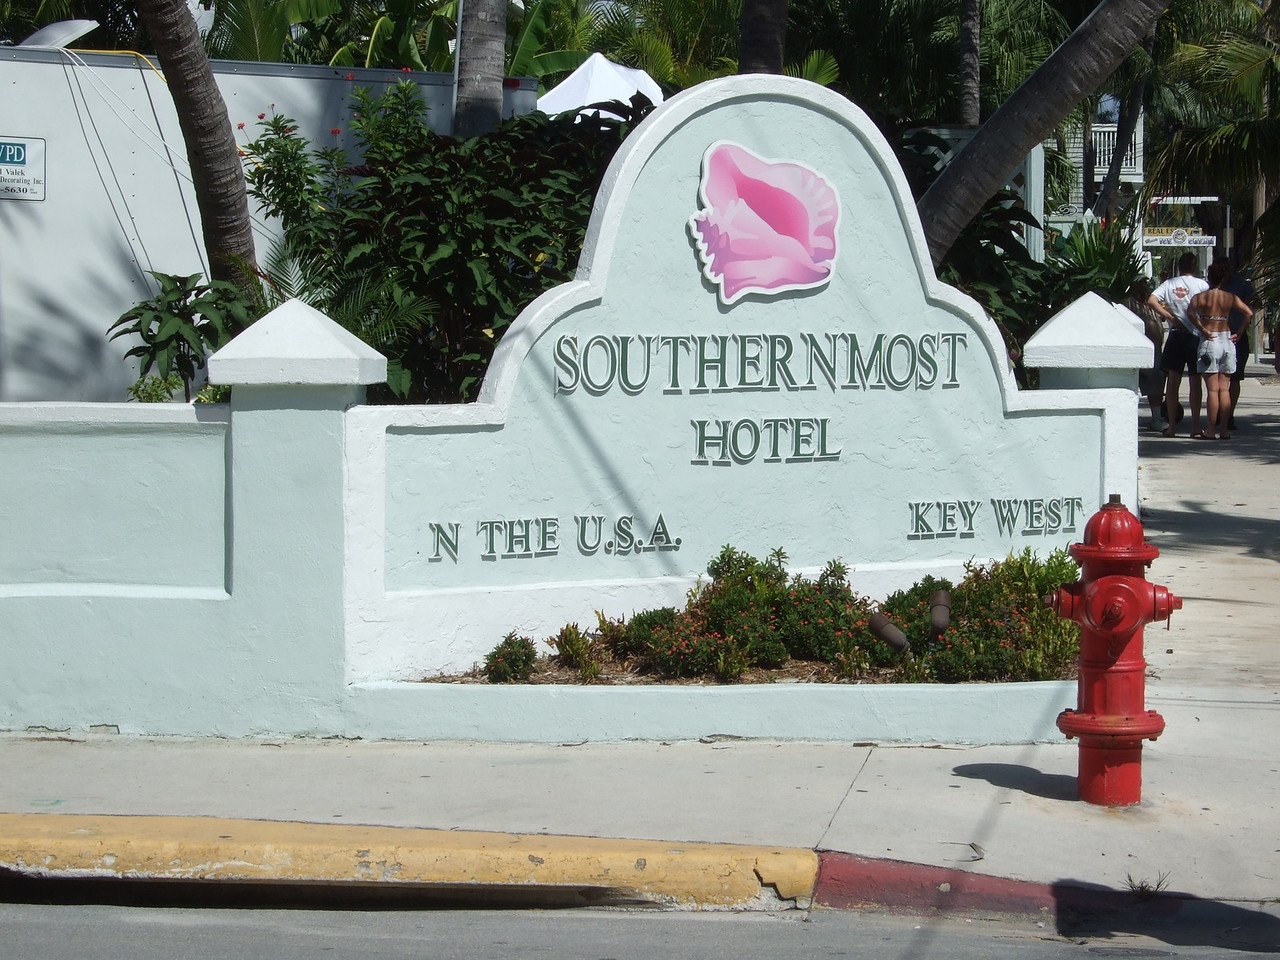 The hotel that is southernmost.